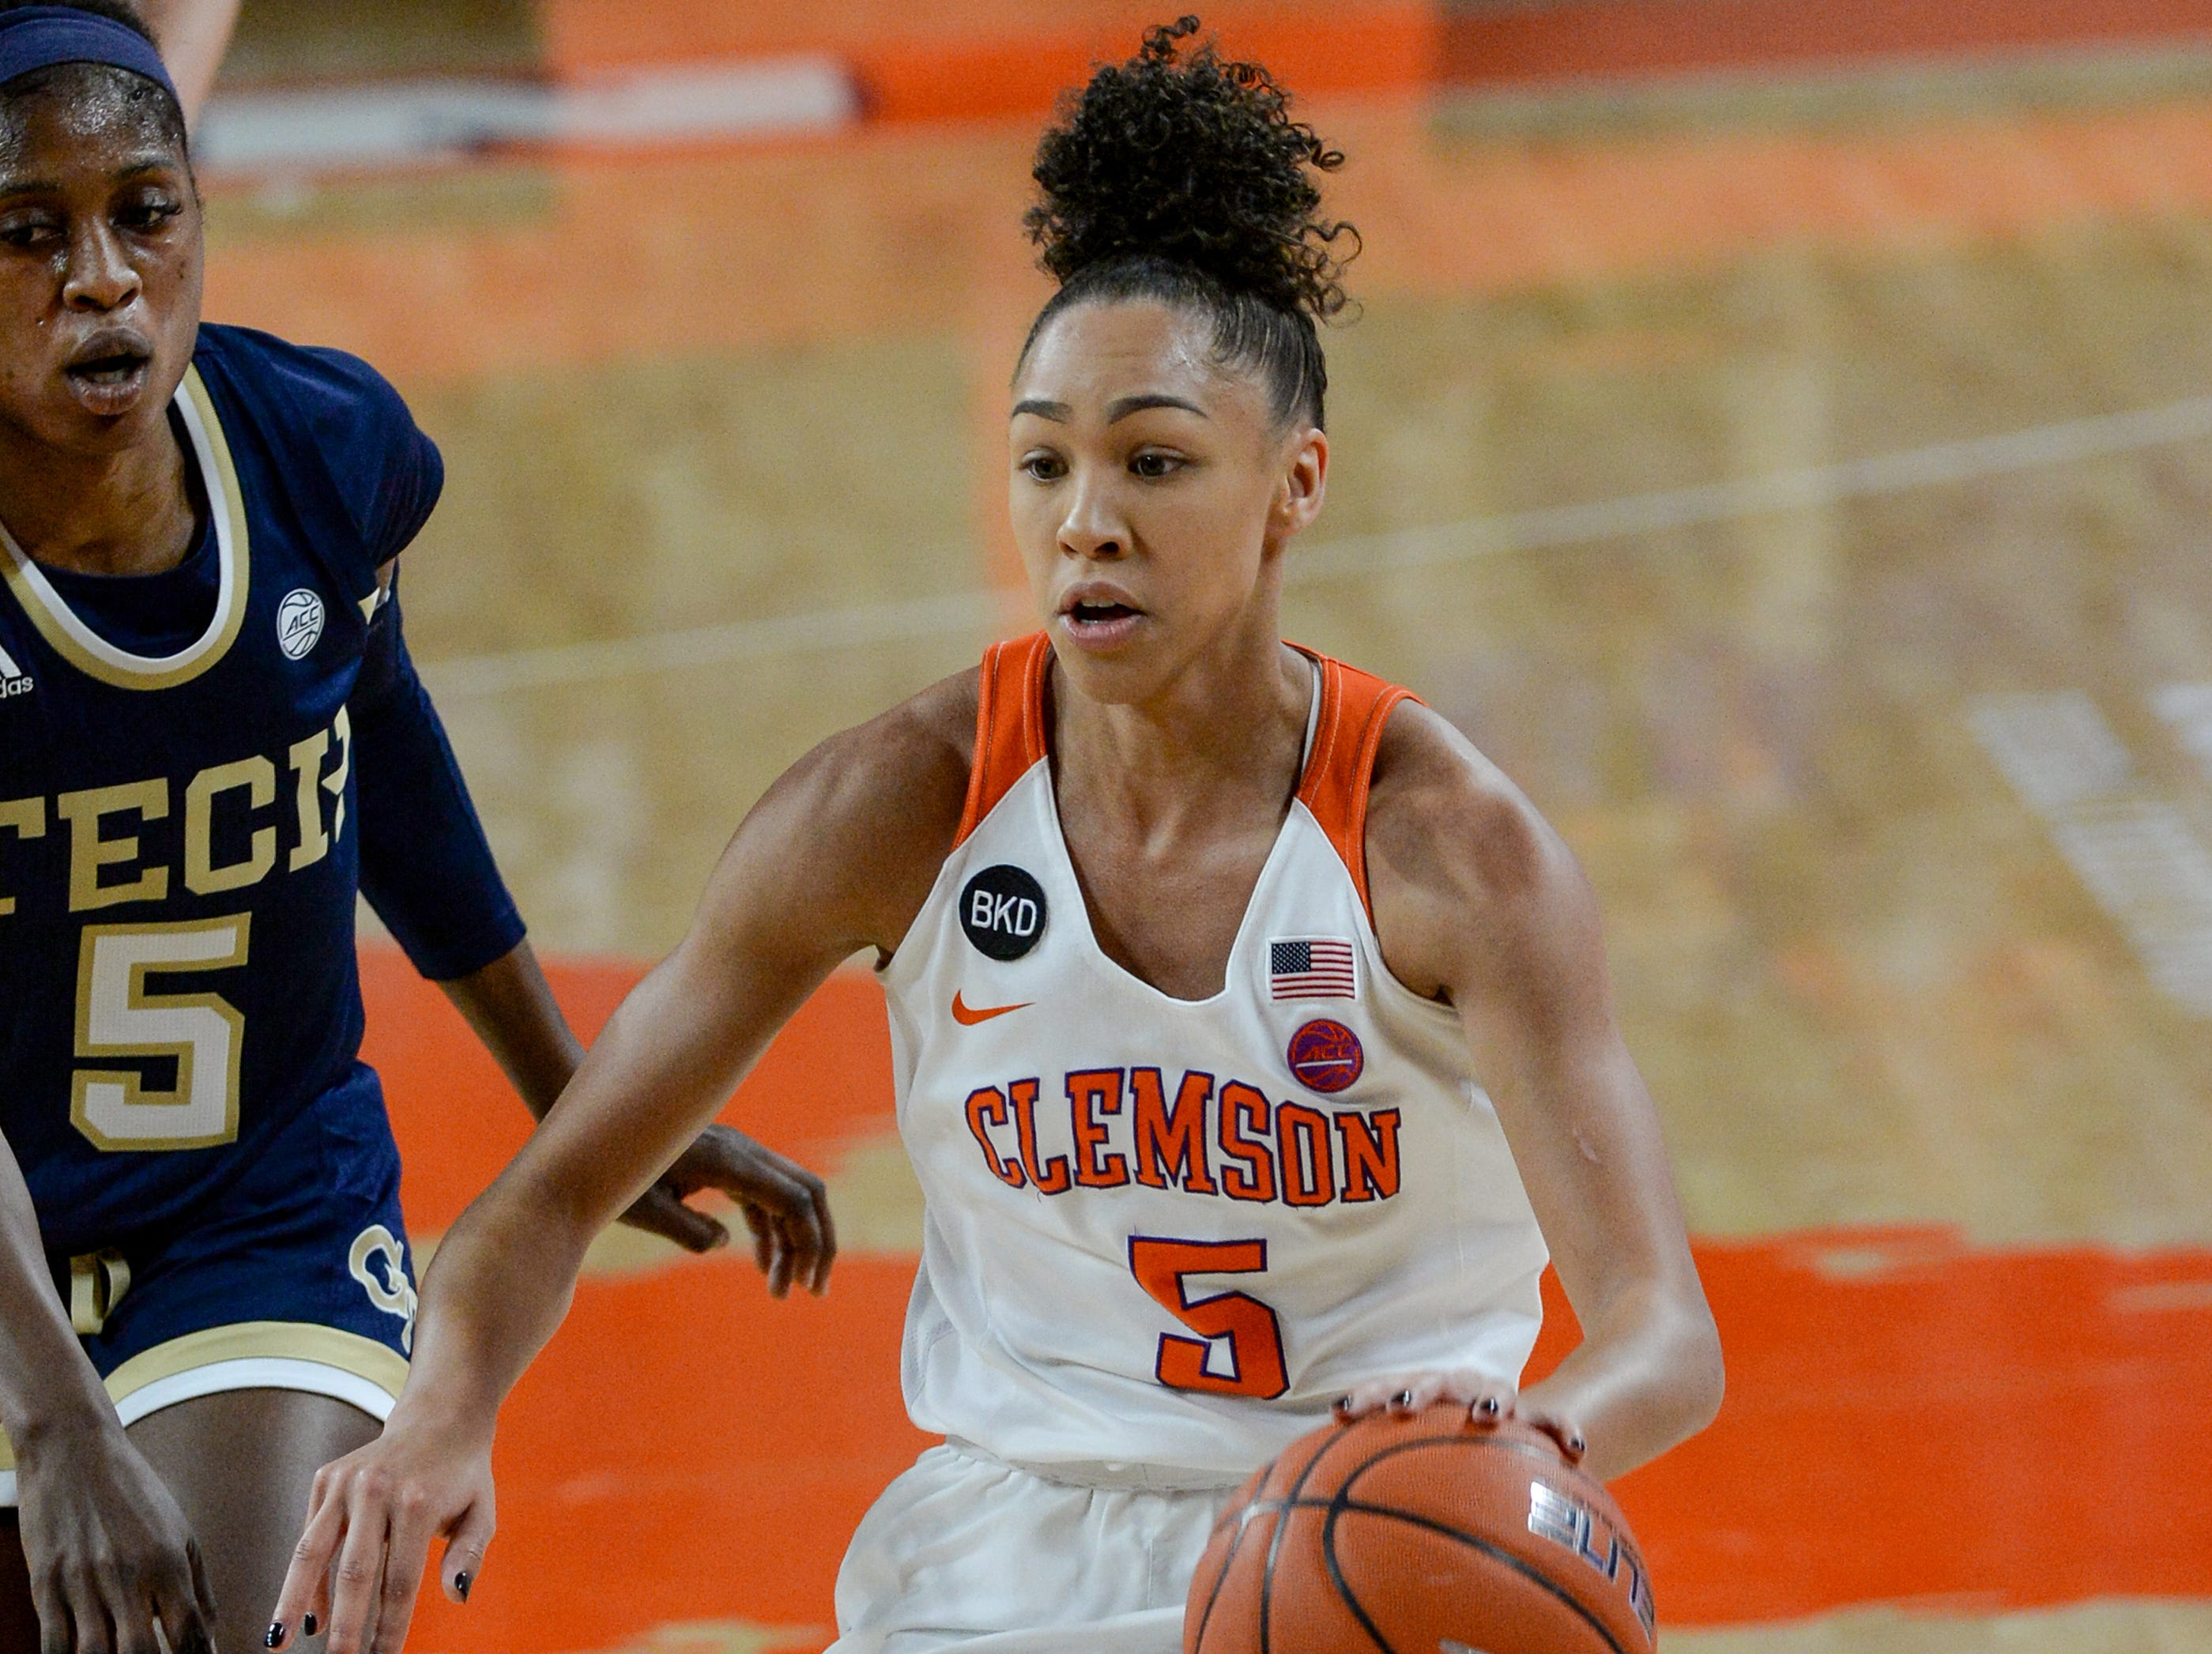 Clemson guard Danielle Edwards(5) dribbles up court during the second quarter of the game with Georgia Tech at Littlejohn Coliseum in Clemson Thursday, January 17, 2019.